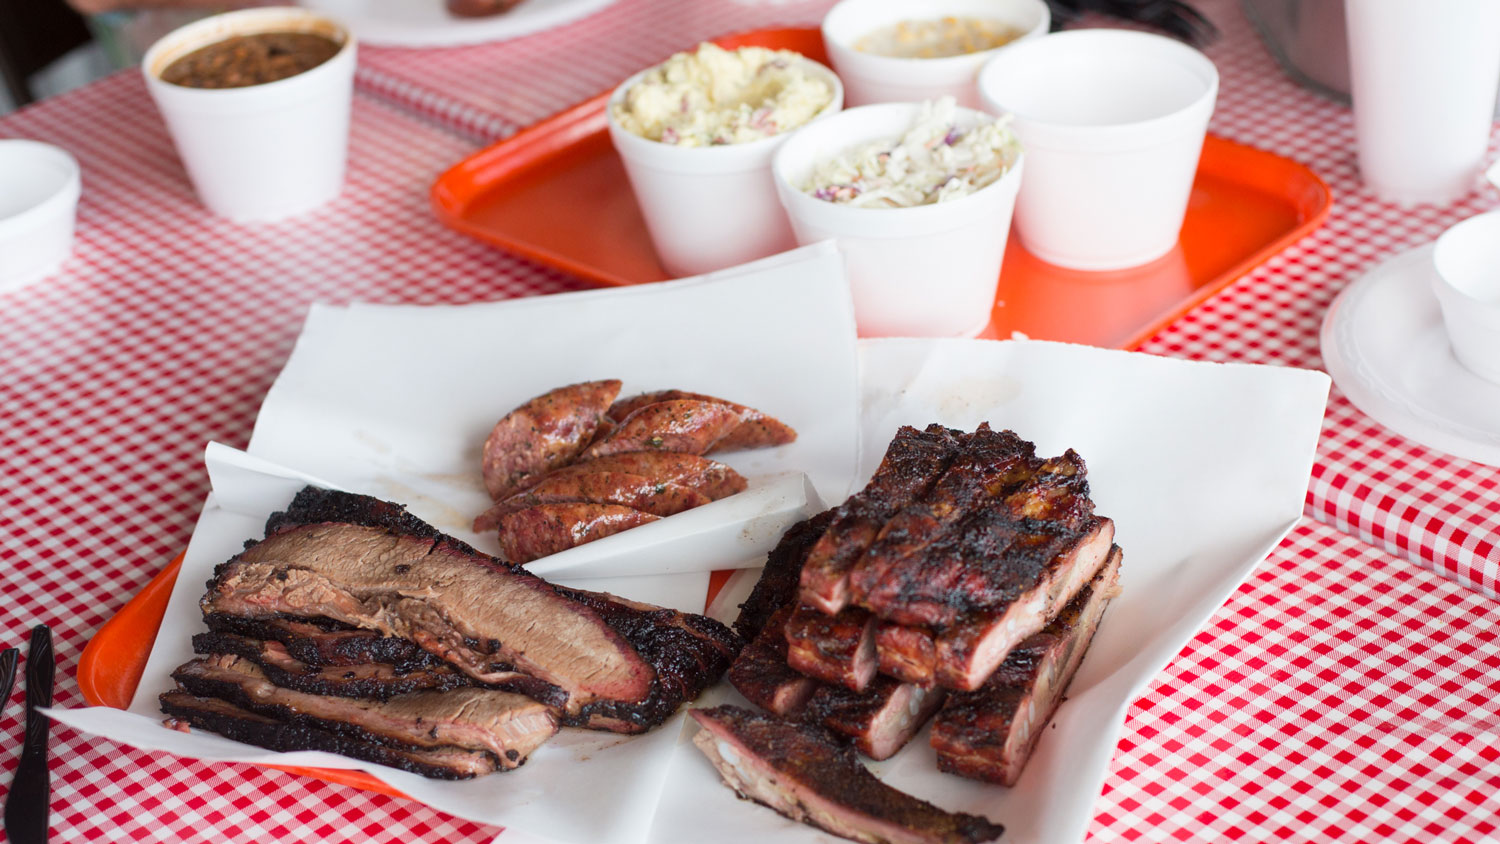 Brisket, sausage and ribs with sides, ready for eating, at Old 300 BBQ